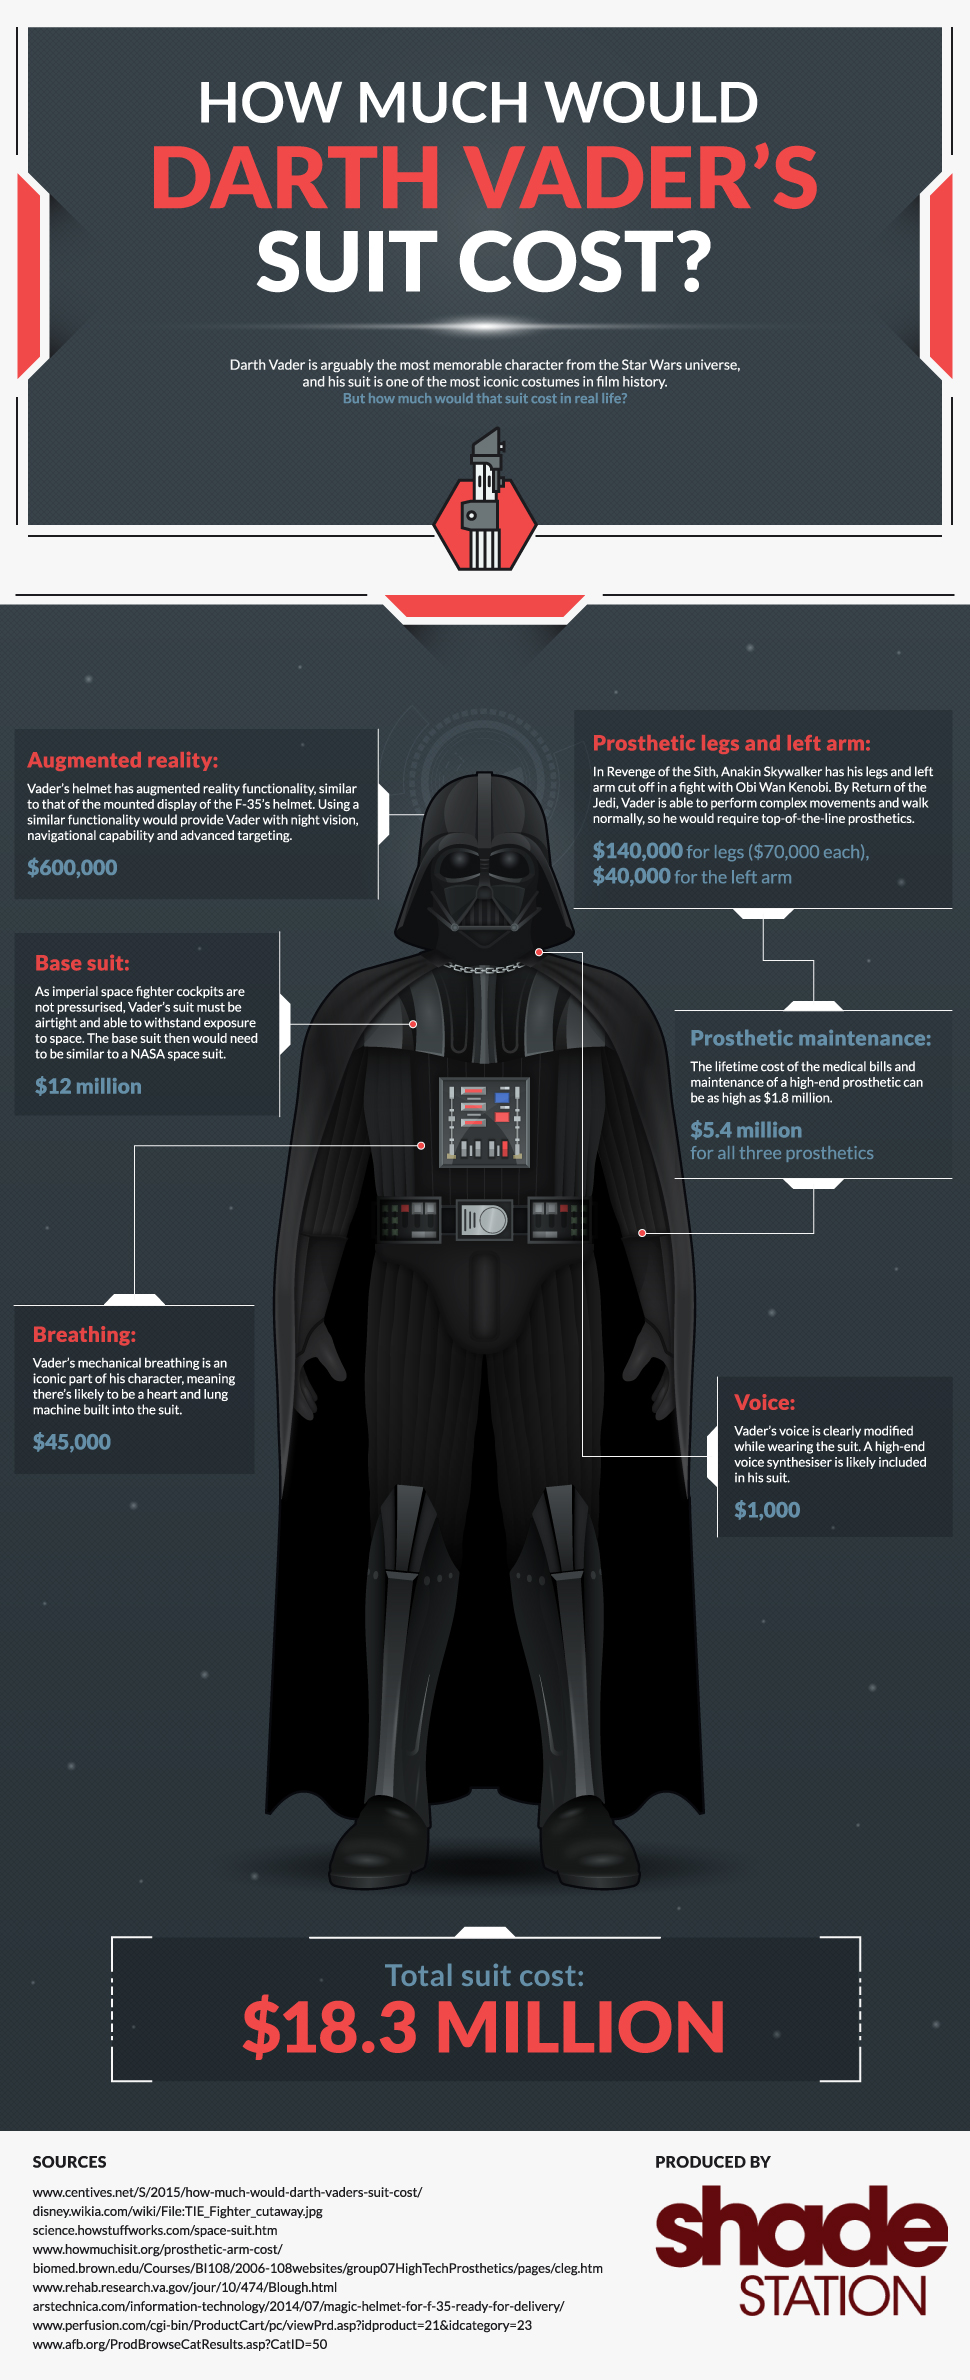 How-Much-Would-Darth-Vader's-Suit-Cost.jpg